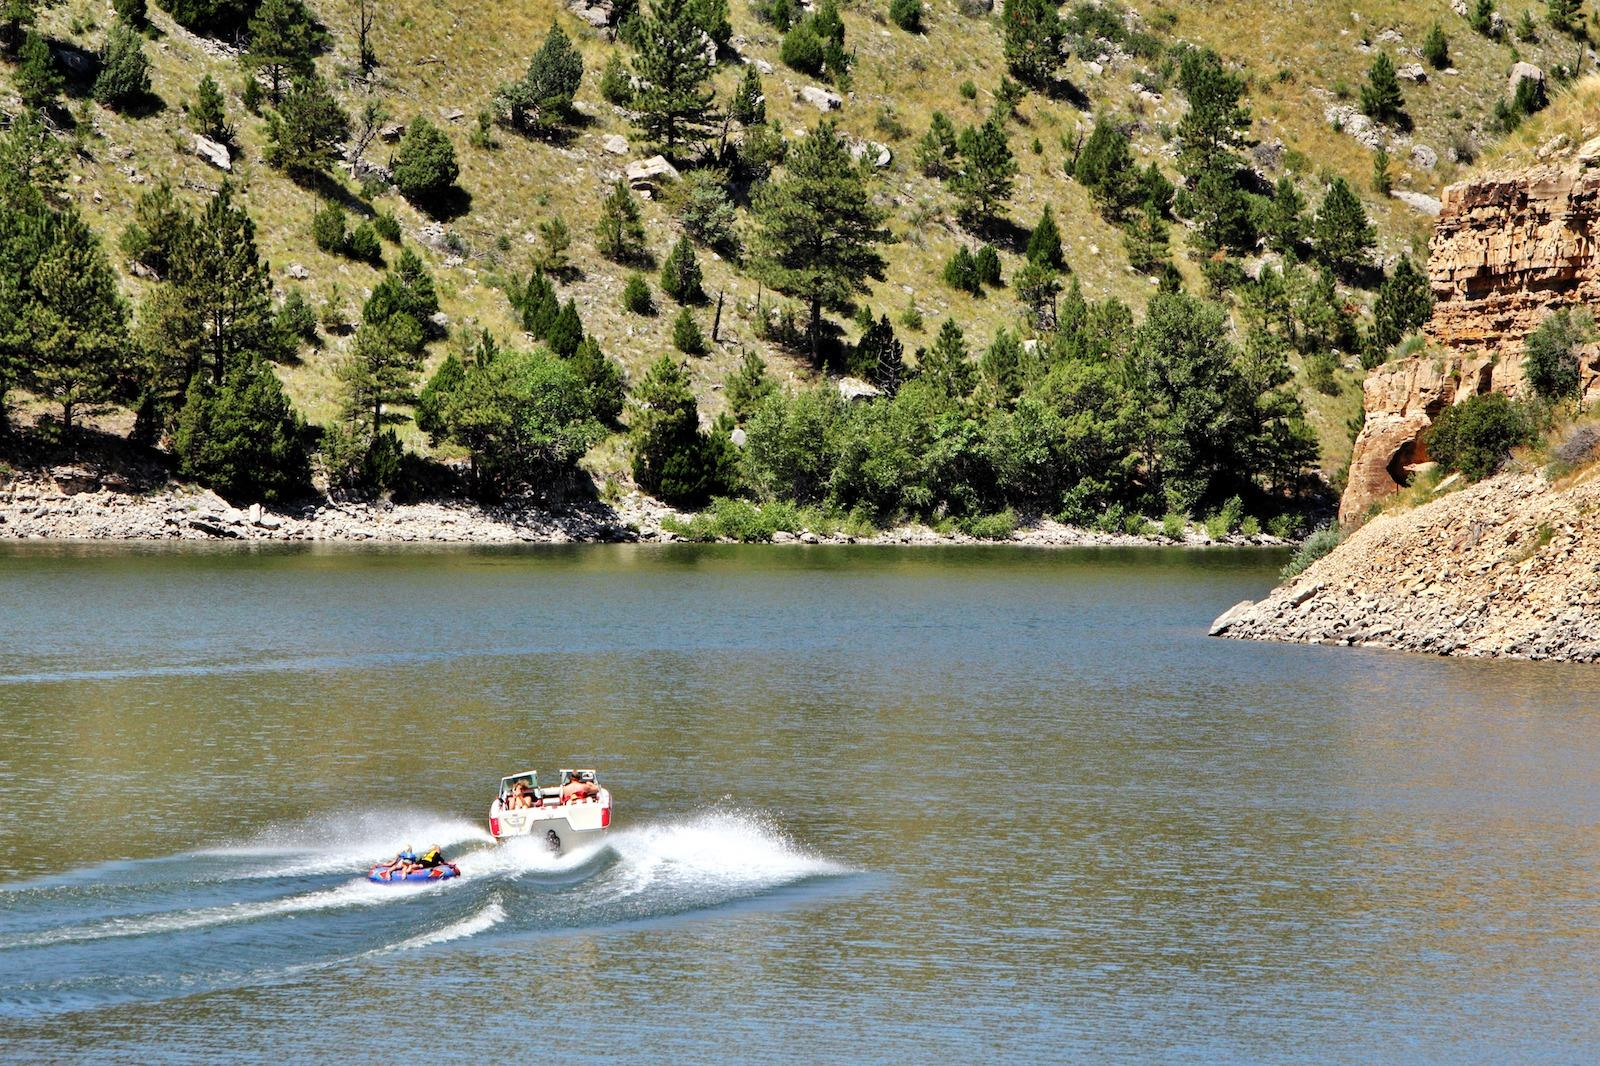 Power boat pulling a tube during family vacation at Guersey State Park in Platte County, Wyoming